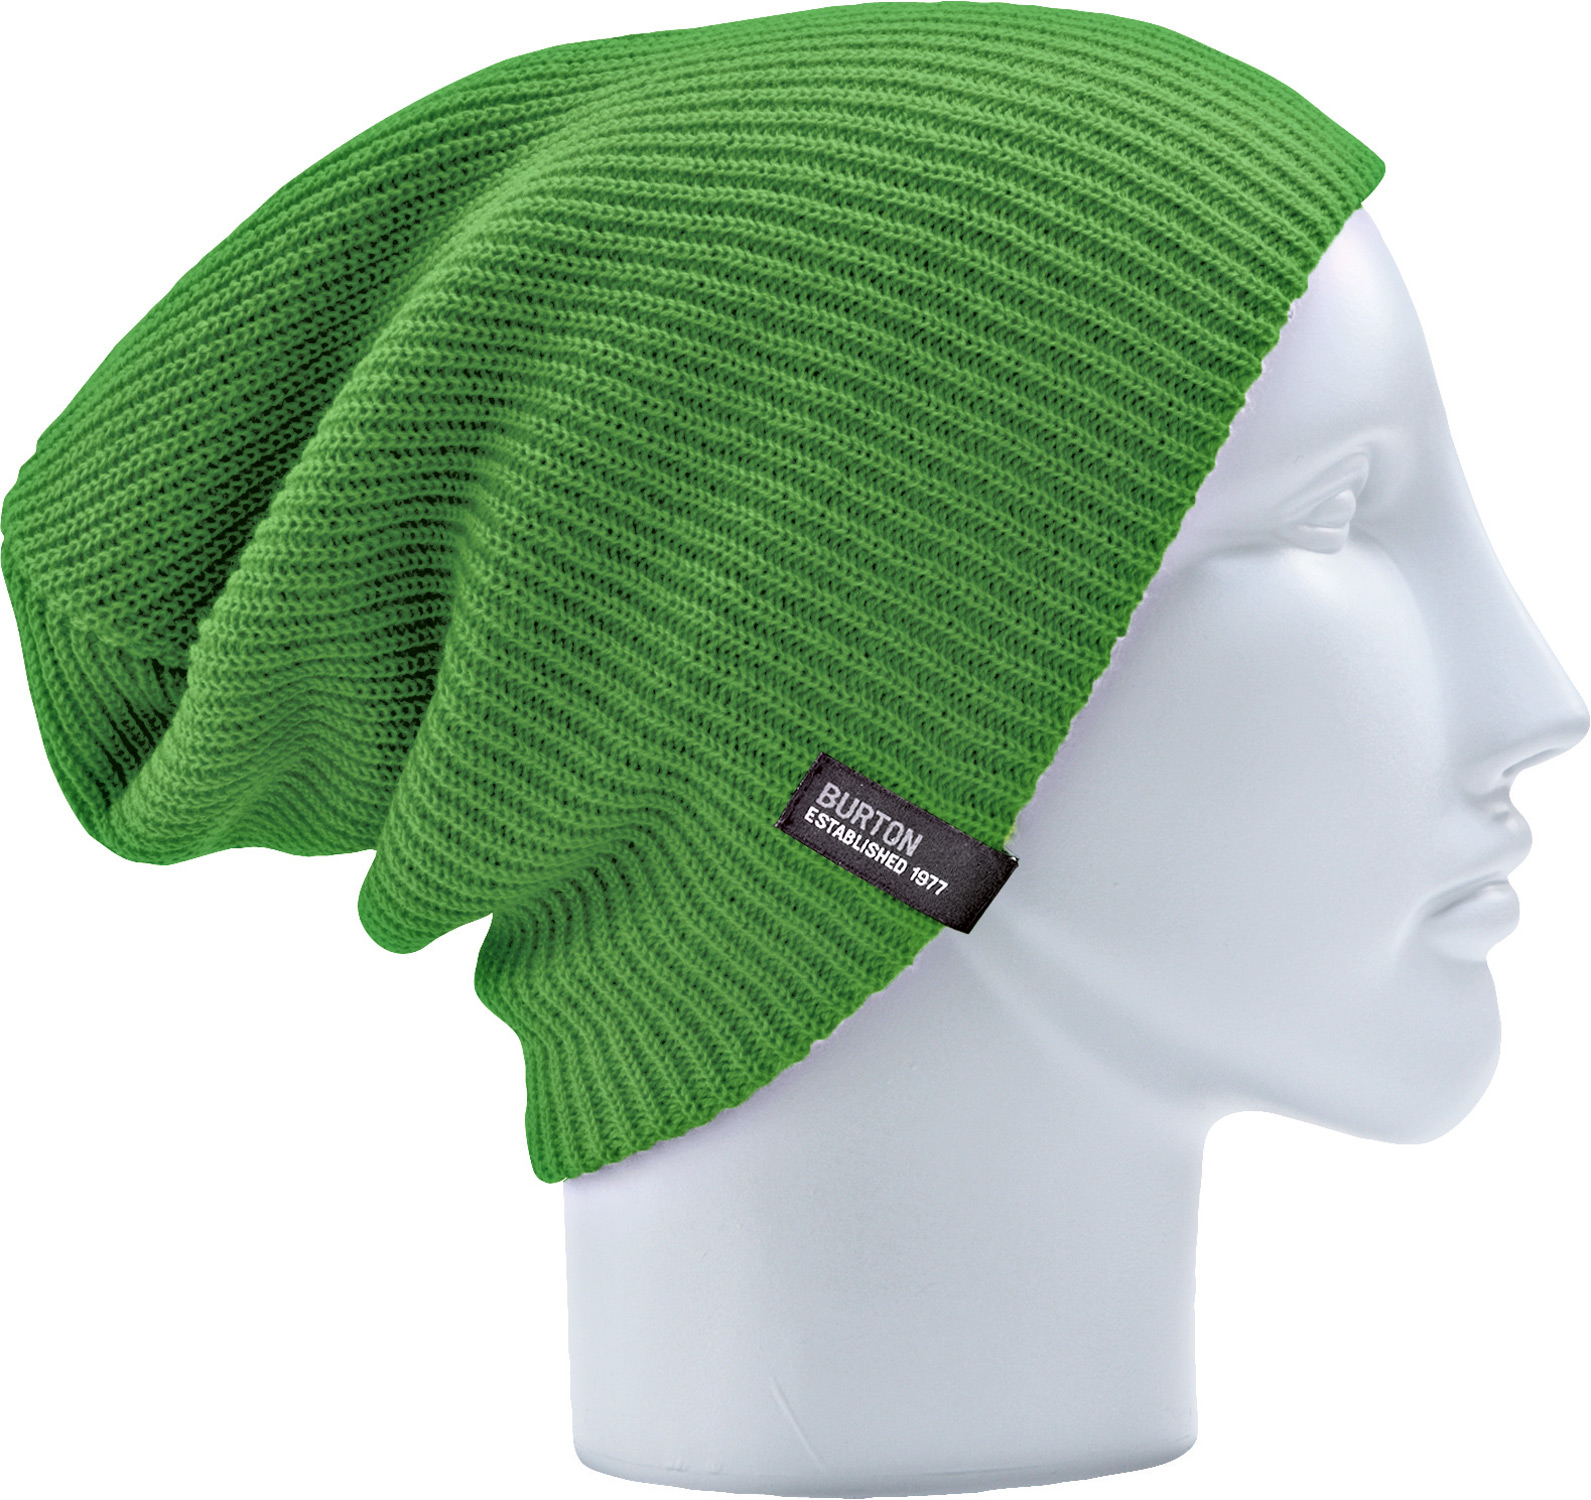 Snowboard Key Features of the Burton Truckstop Beanie: Fold-Up with Super Slouch Fit One Size Fits All 100% Acrylic/Basic Solid Knit Beanie - $12.95